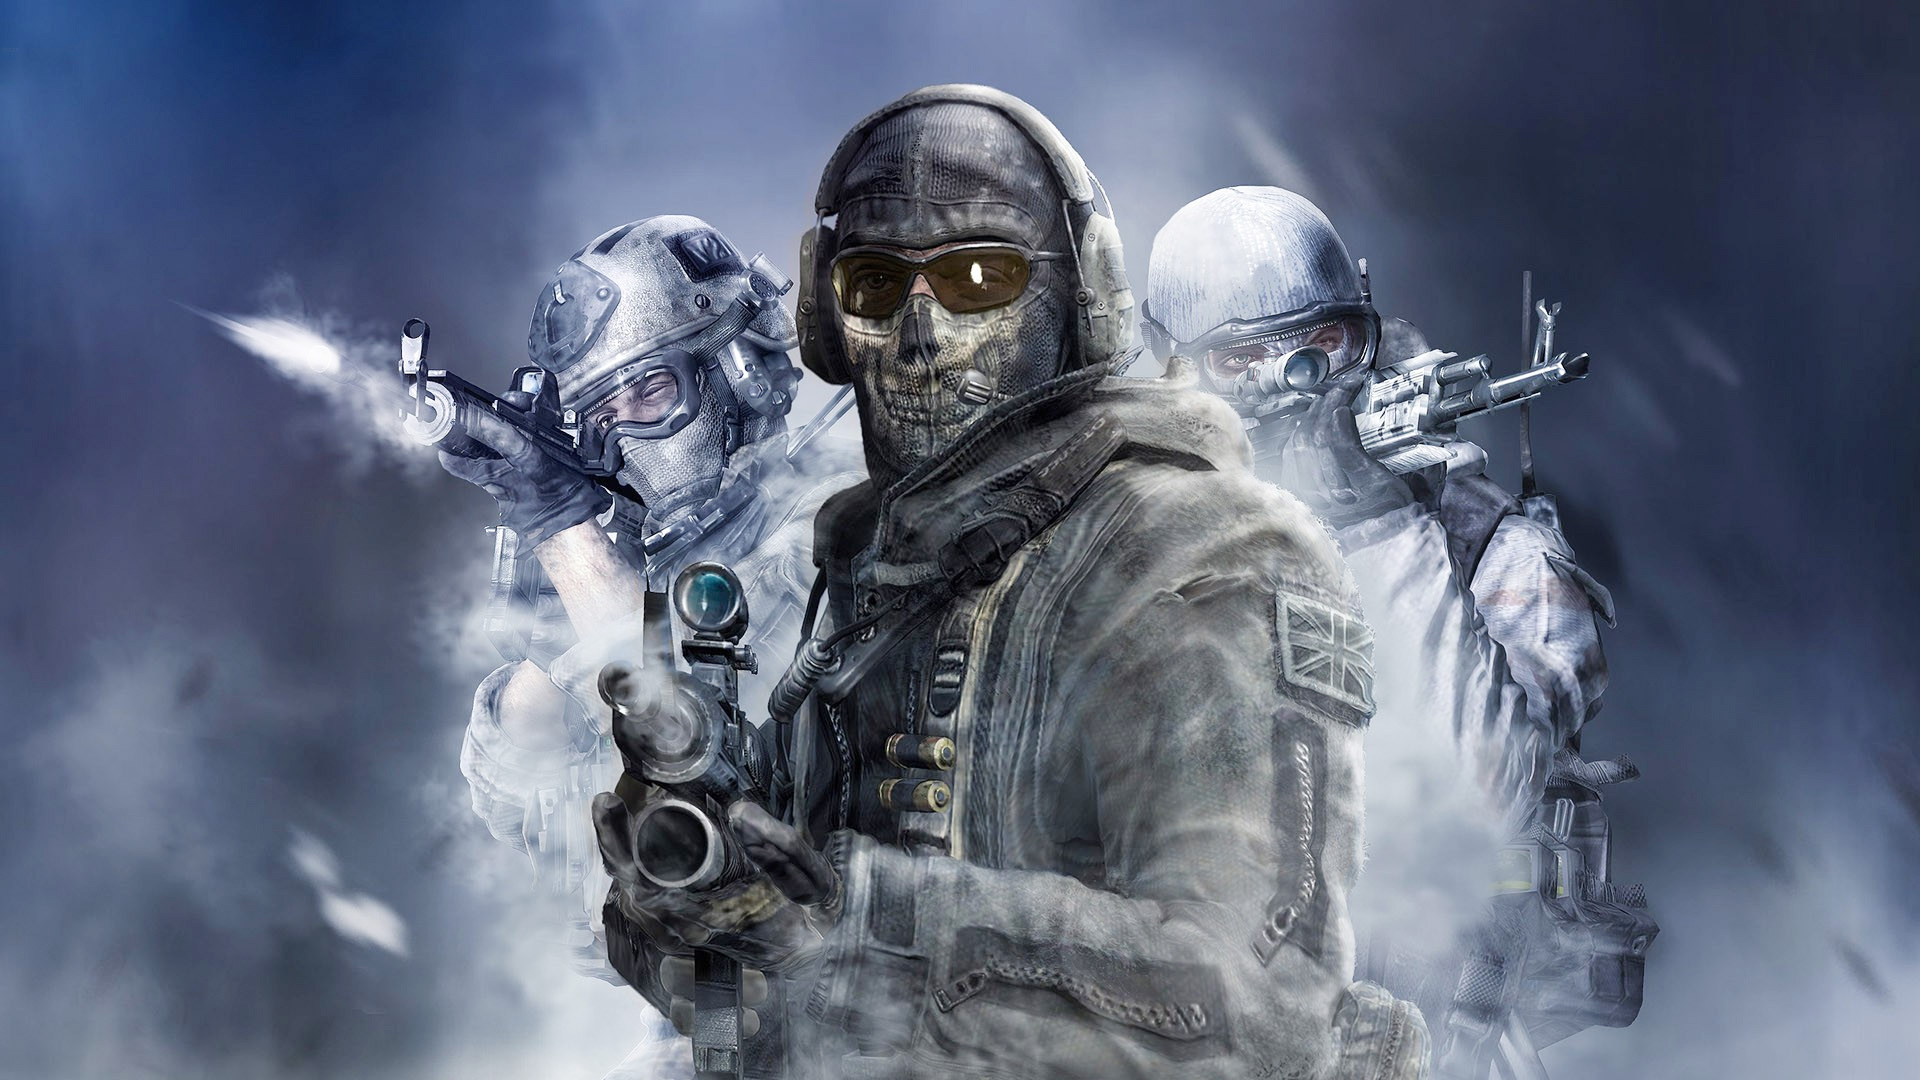 Collection of Call Duty Wallpaper on HDWallpapers